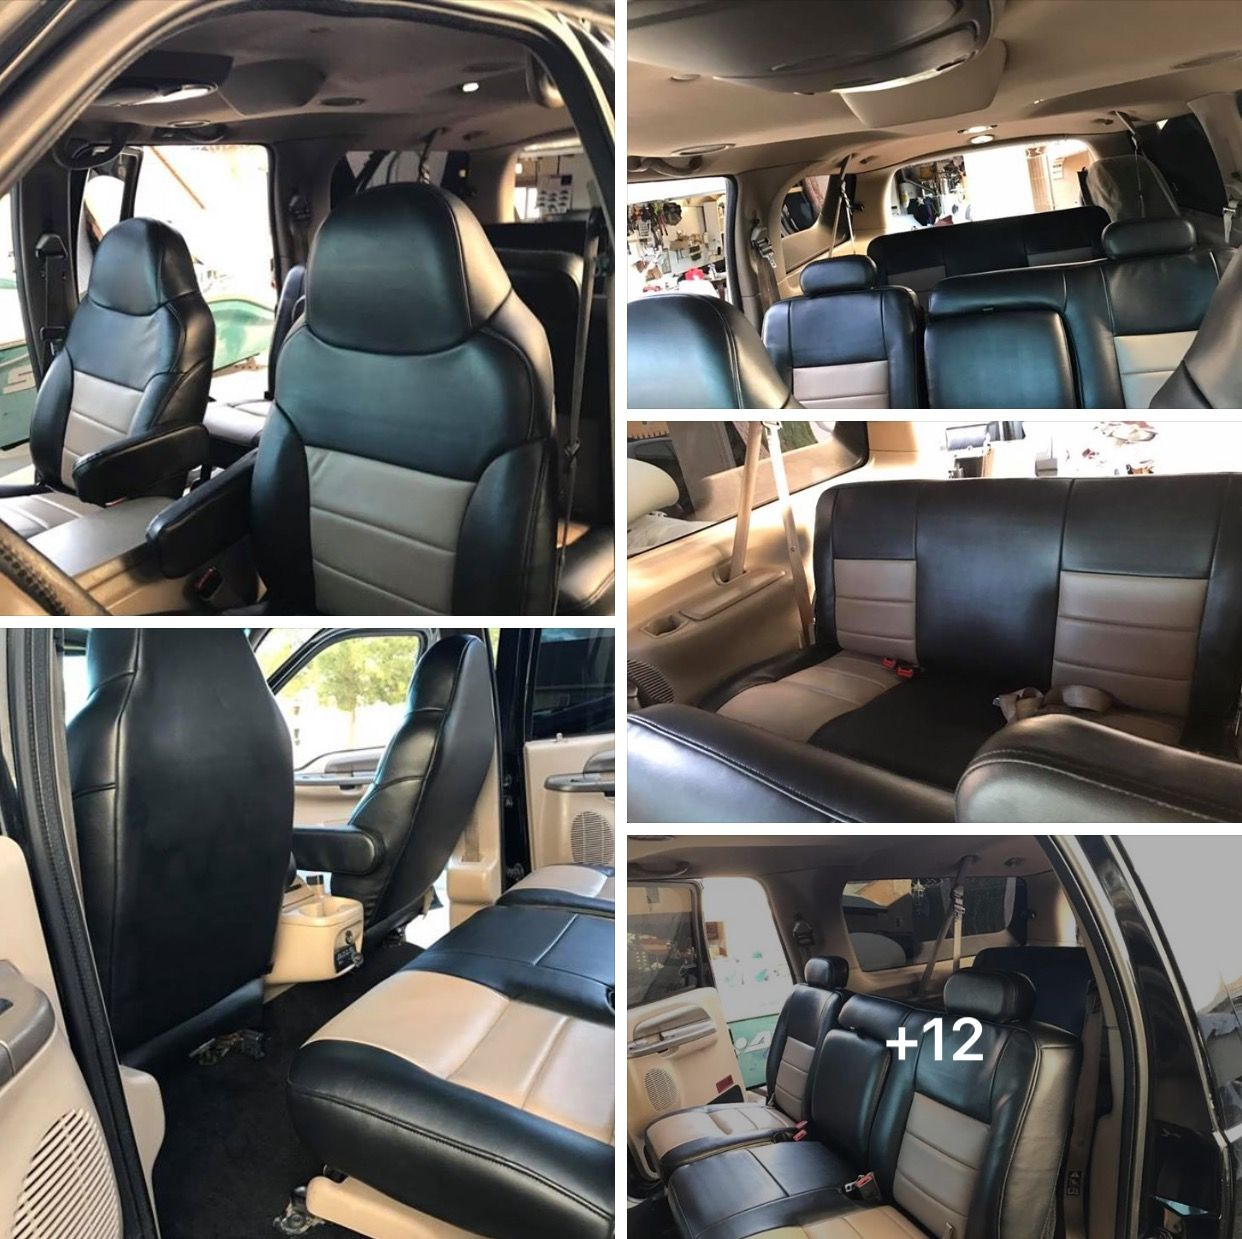 new upholstery for the x lifted excursion ford excursion diesel offroad accessories truck [ 1242 x 1239 Pixel ]